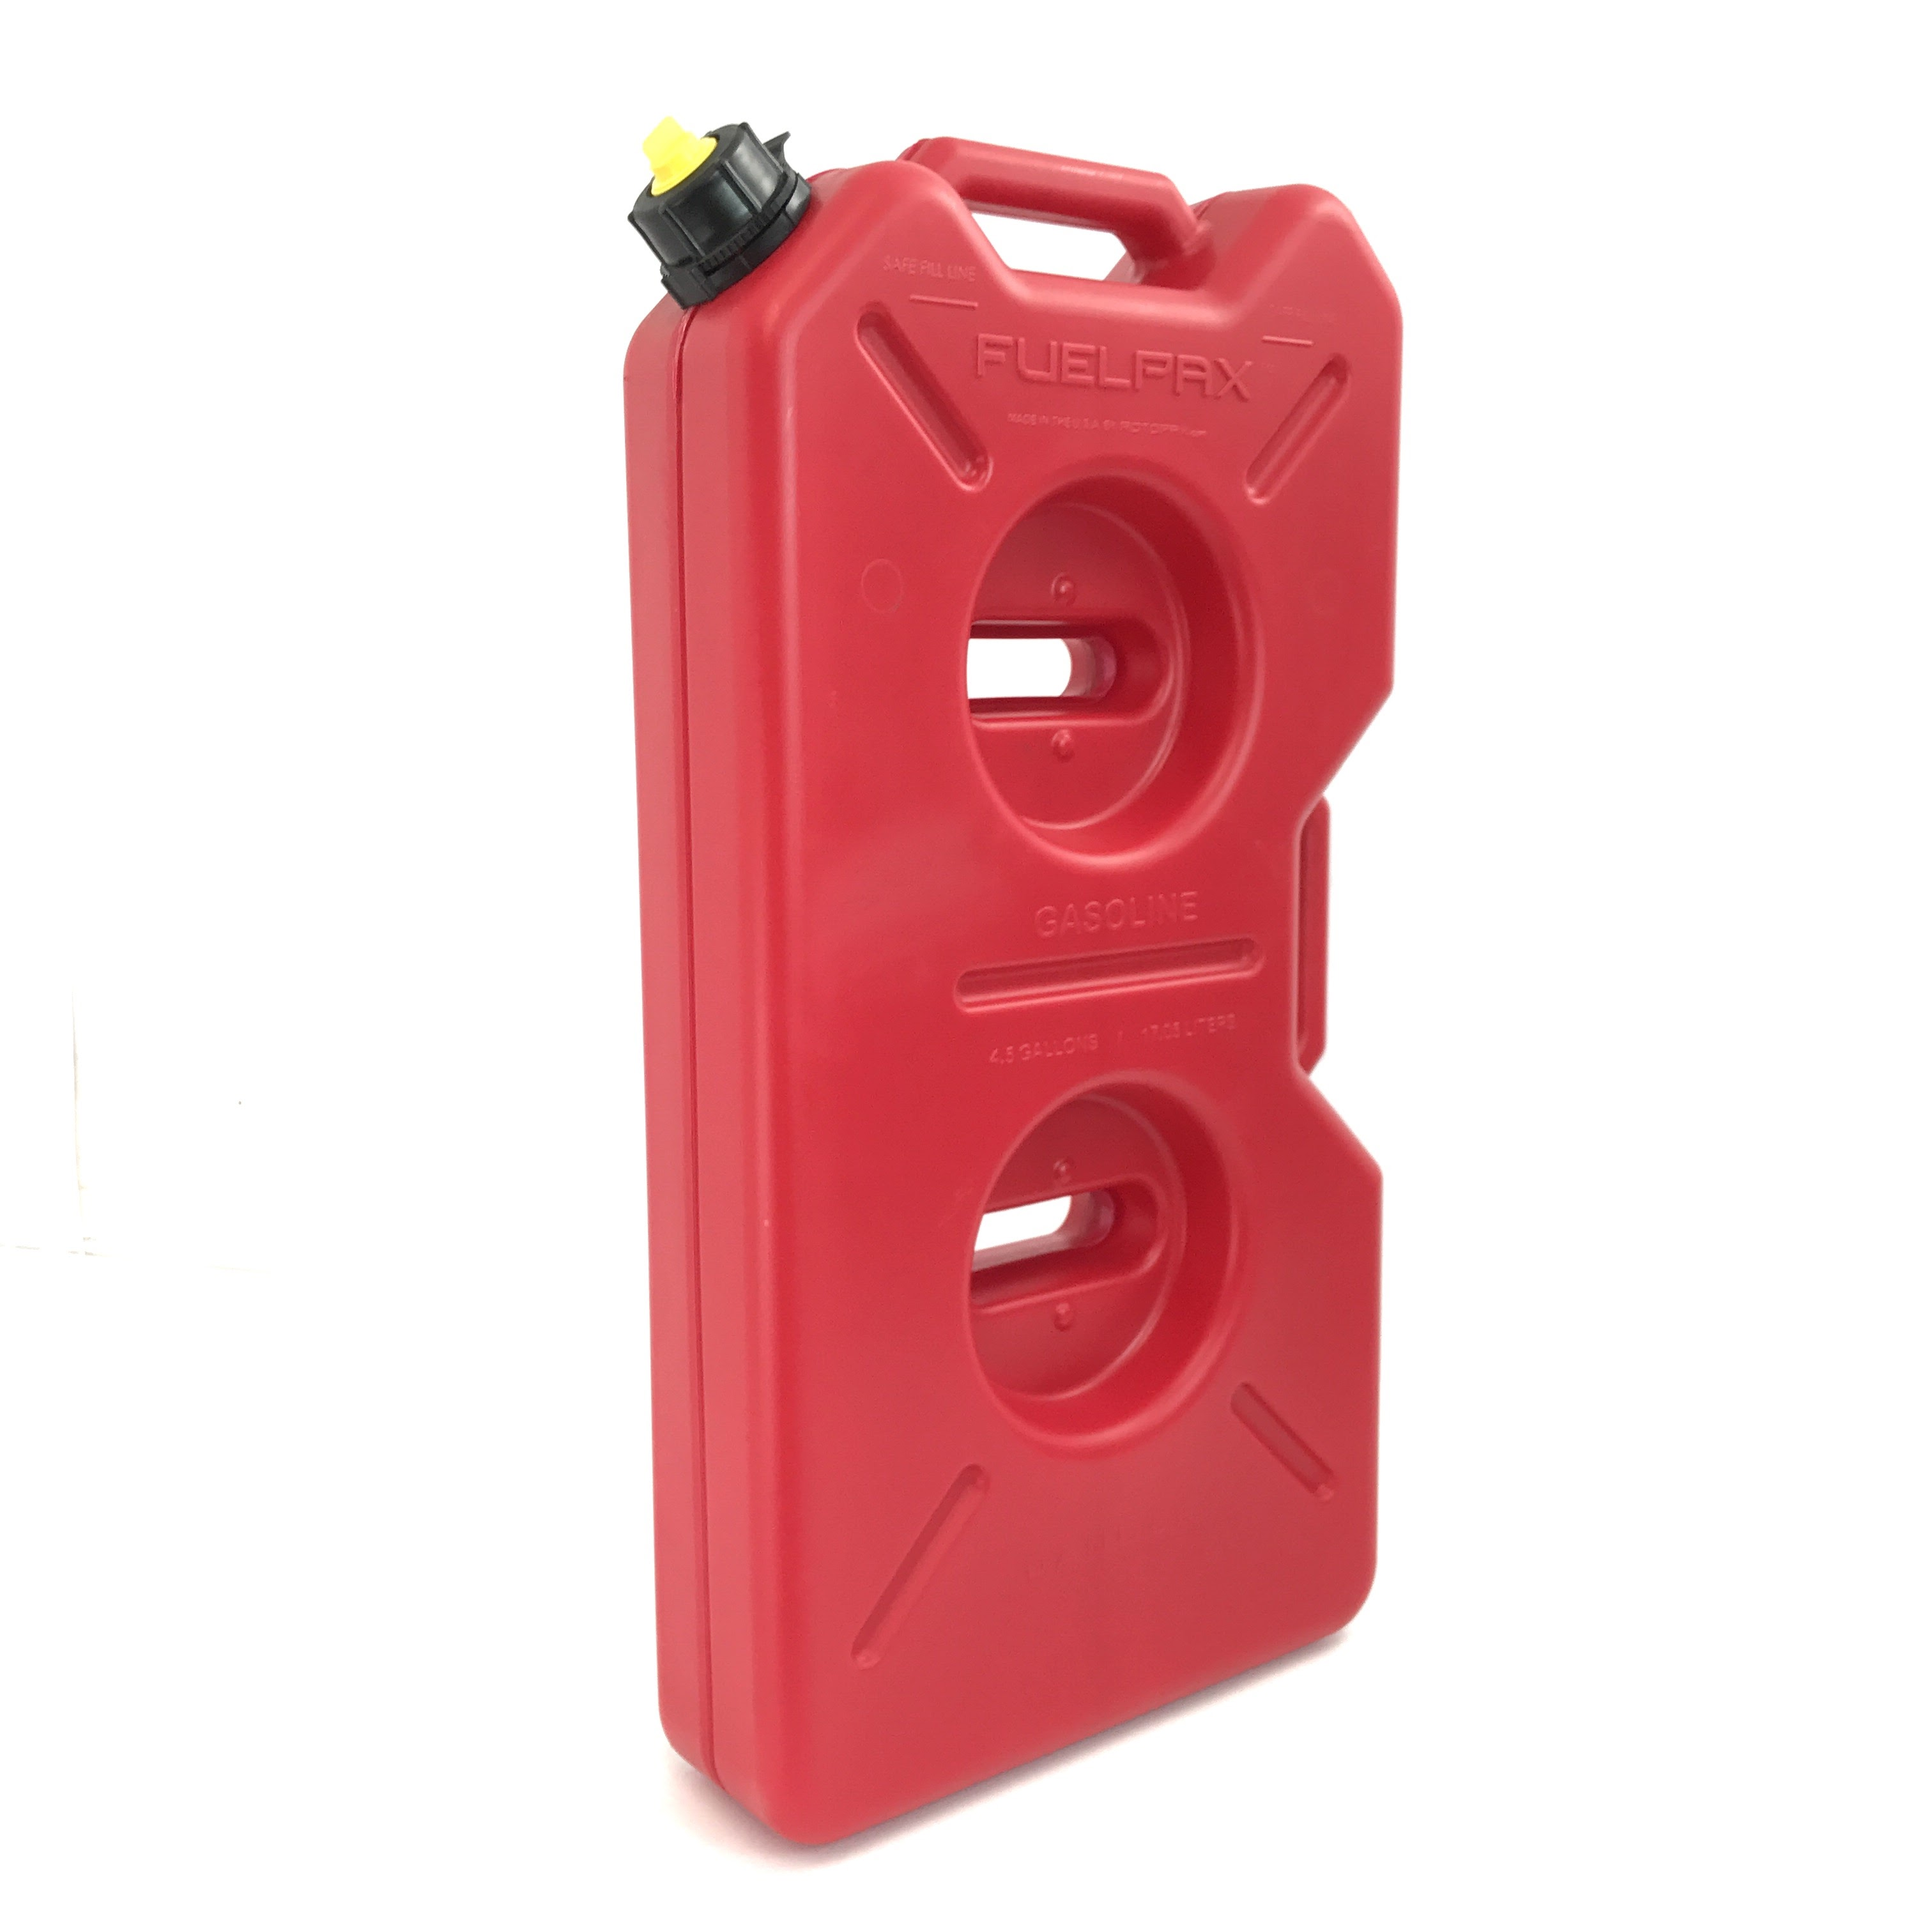 RotoPax are the only EPA and CARB compliant fuel containers available for sale in the United States! This is thanks to a patented three layer roto-molding process, along with specially formulated plastic barrier material to meet the government's new extremely low permability requirements.